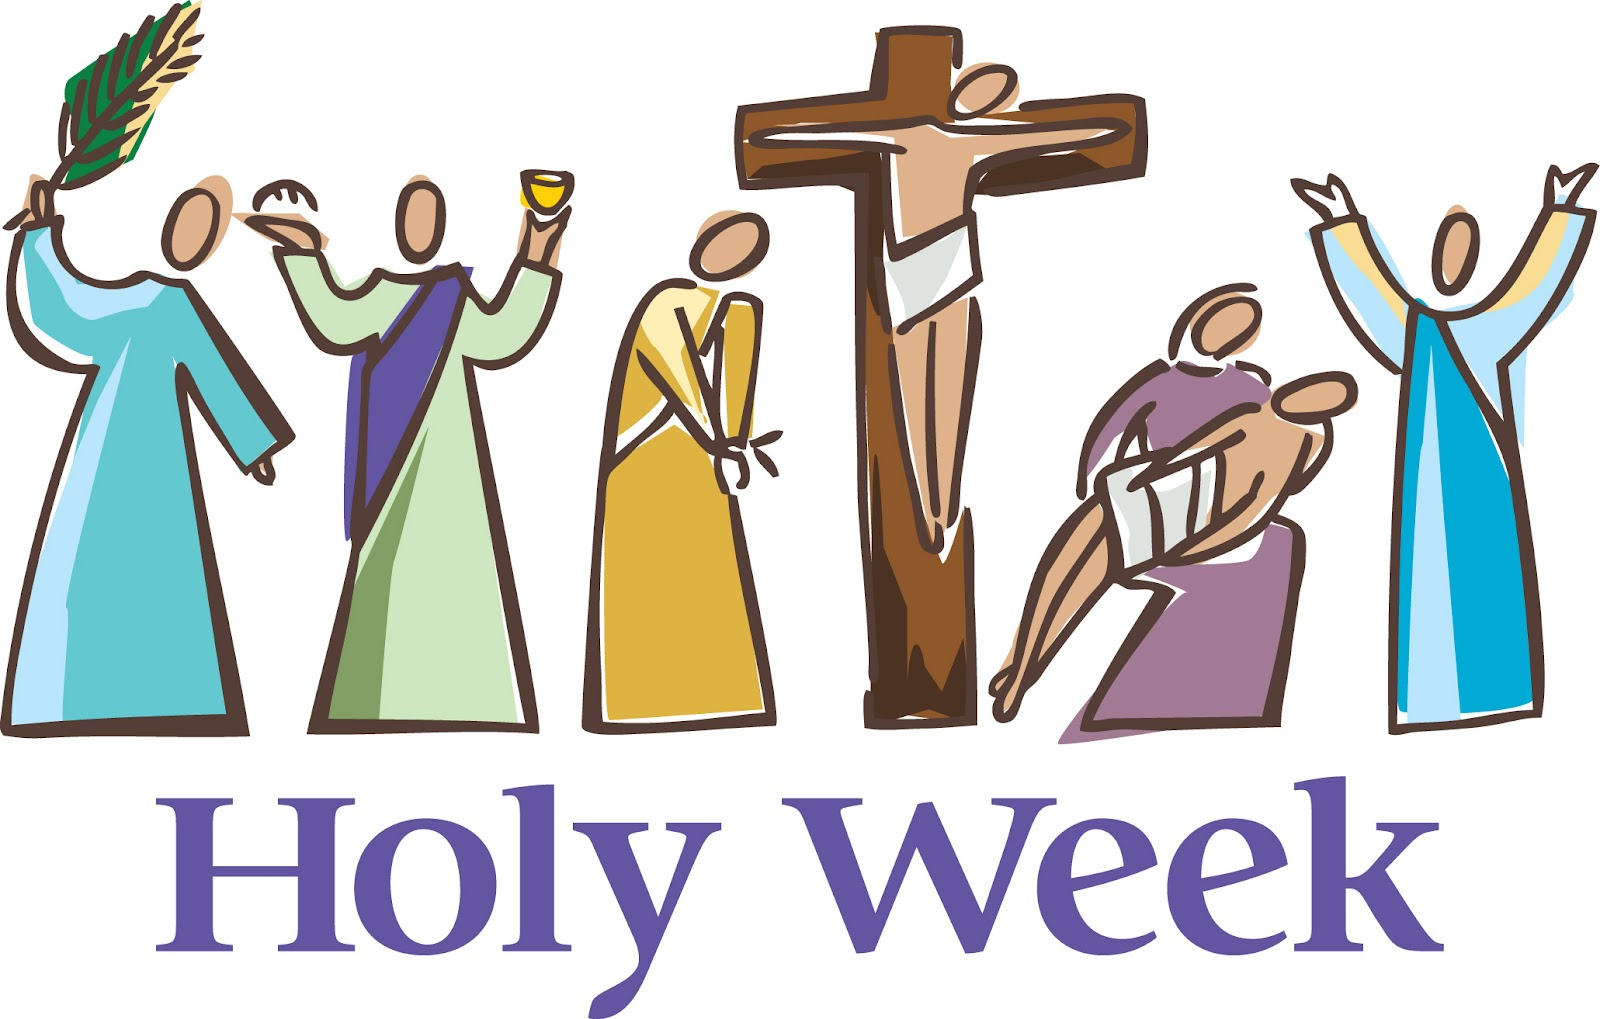 Reflection for Monday in Holy Week